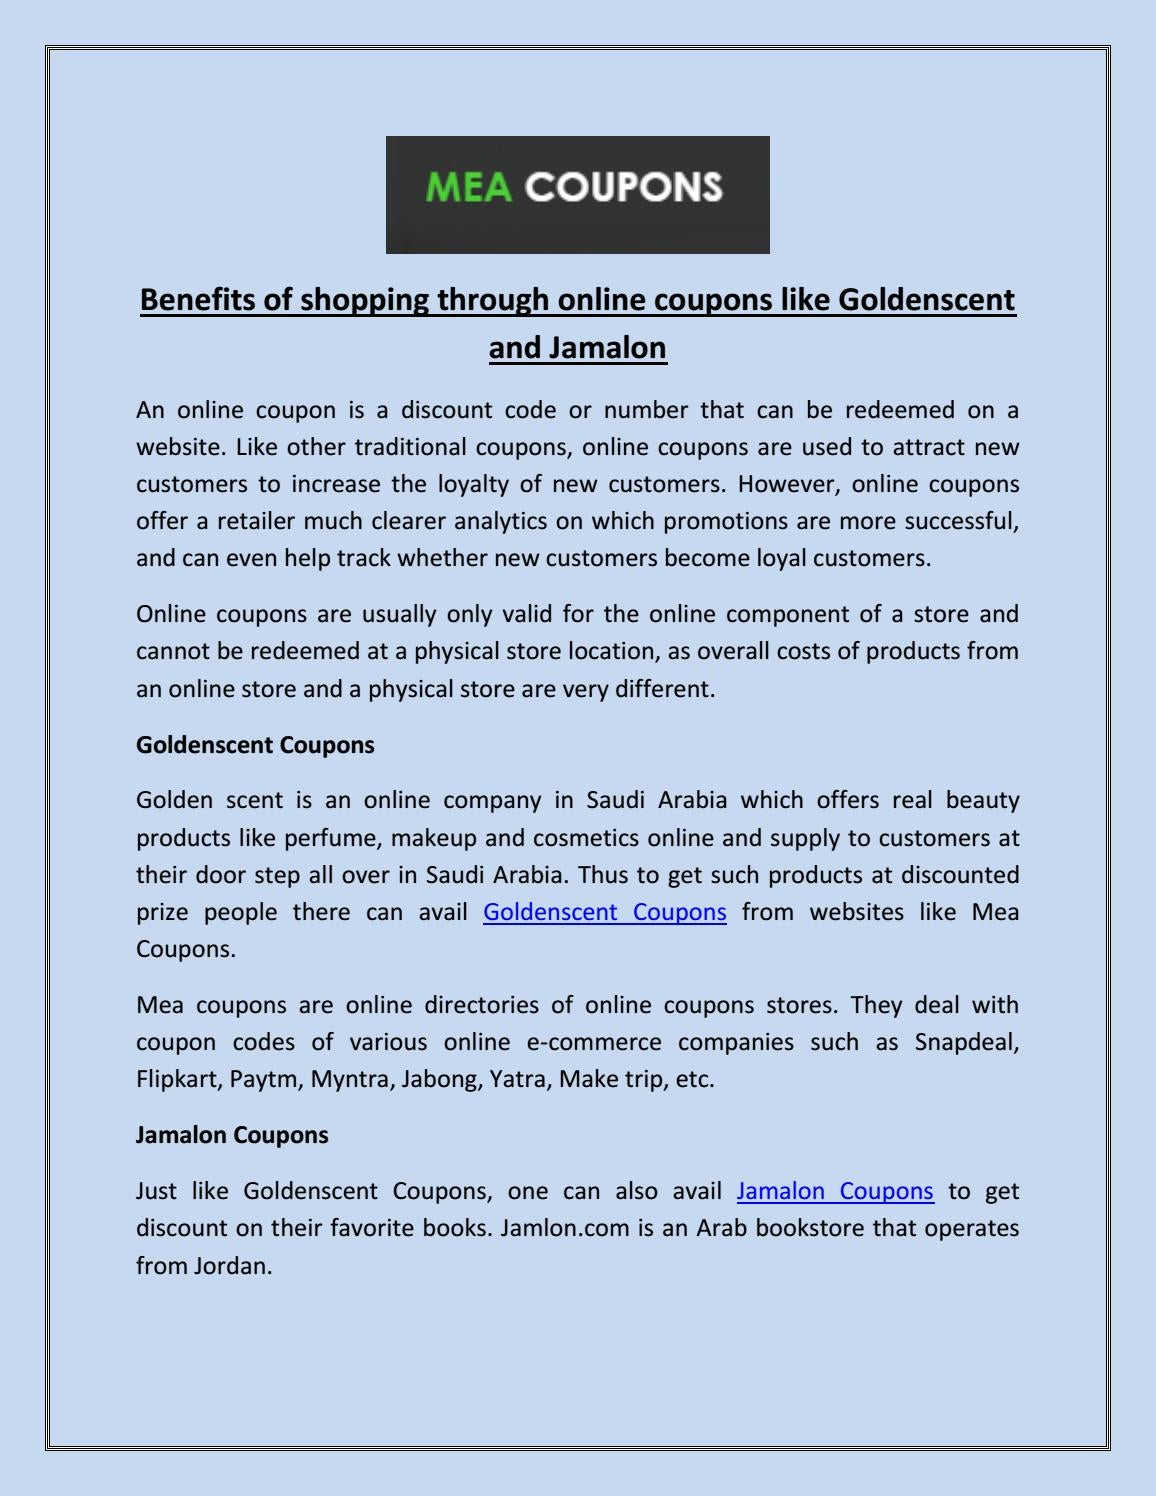 Goldenscent Coupons by Mea Coupons - issuu